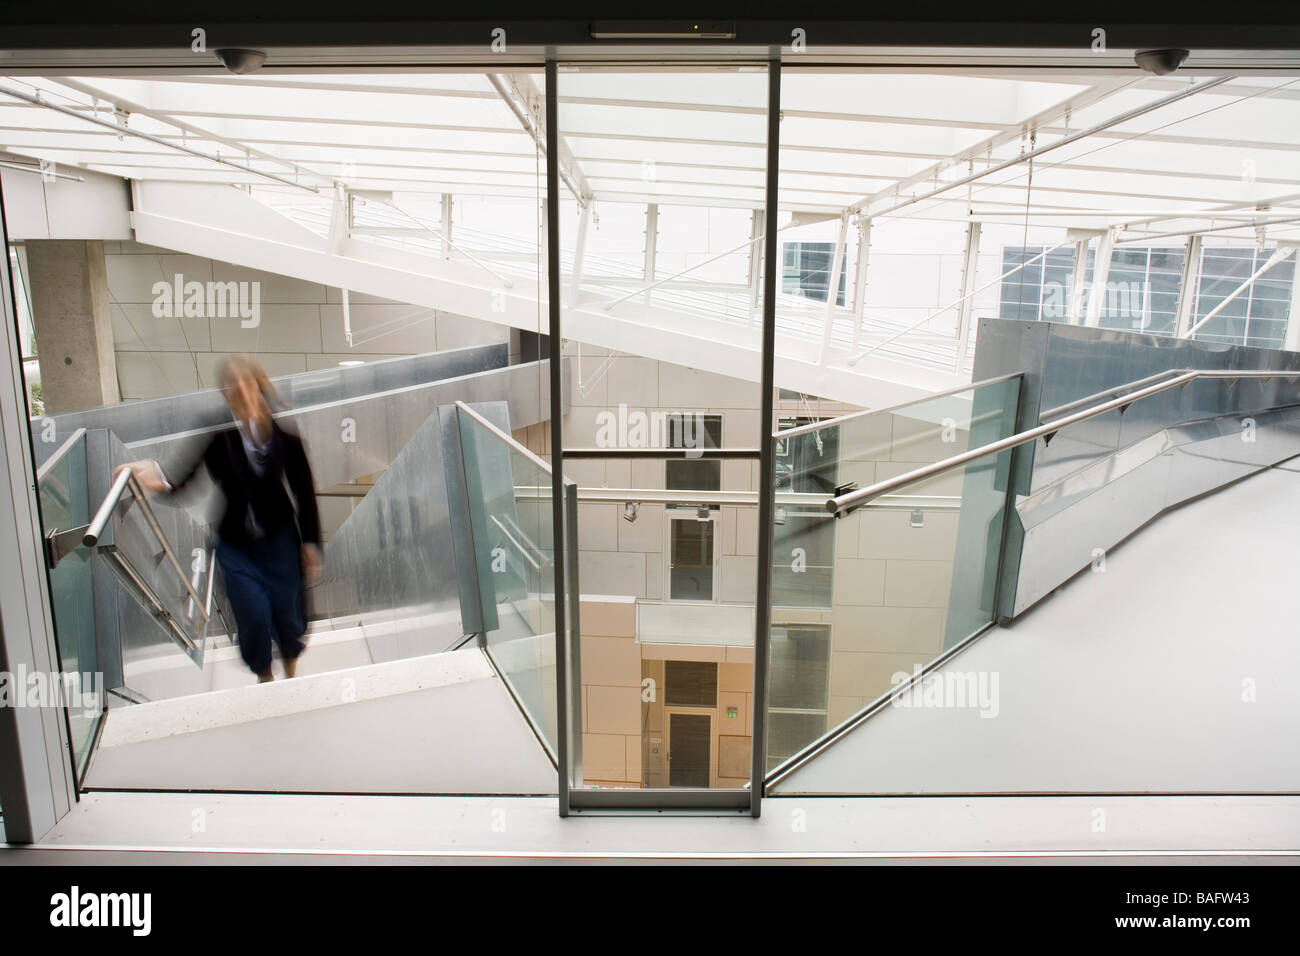 Academia of Fine Arts, Munich, Germany, Coop Himmelb(l)au, Academia of fine arts stairs and ramp converge at the - Stock Image